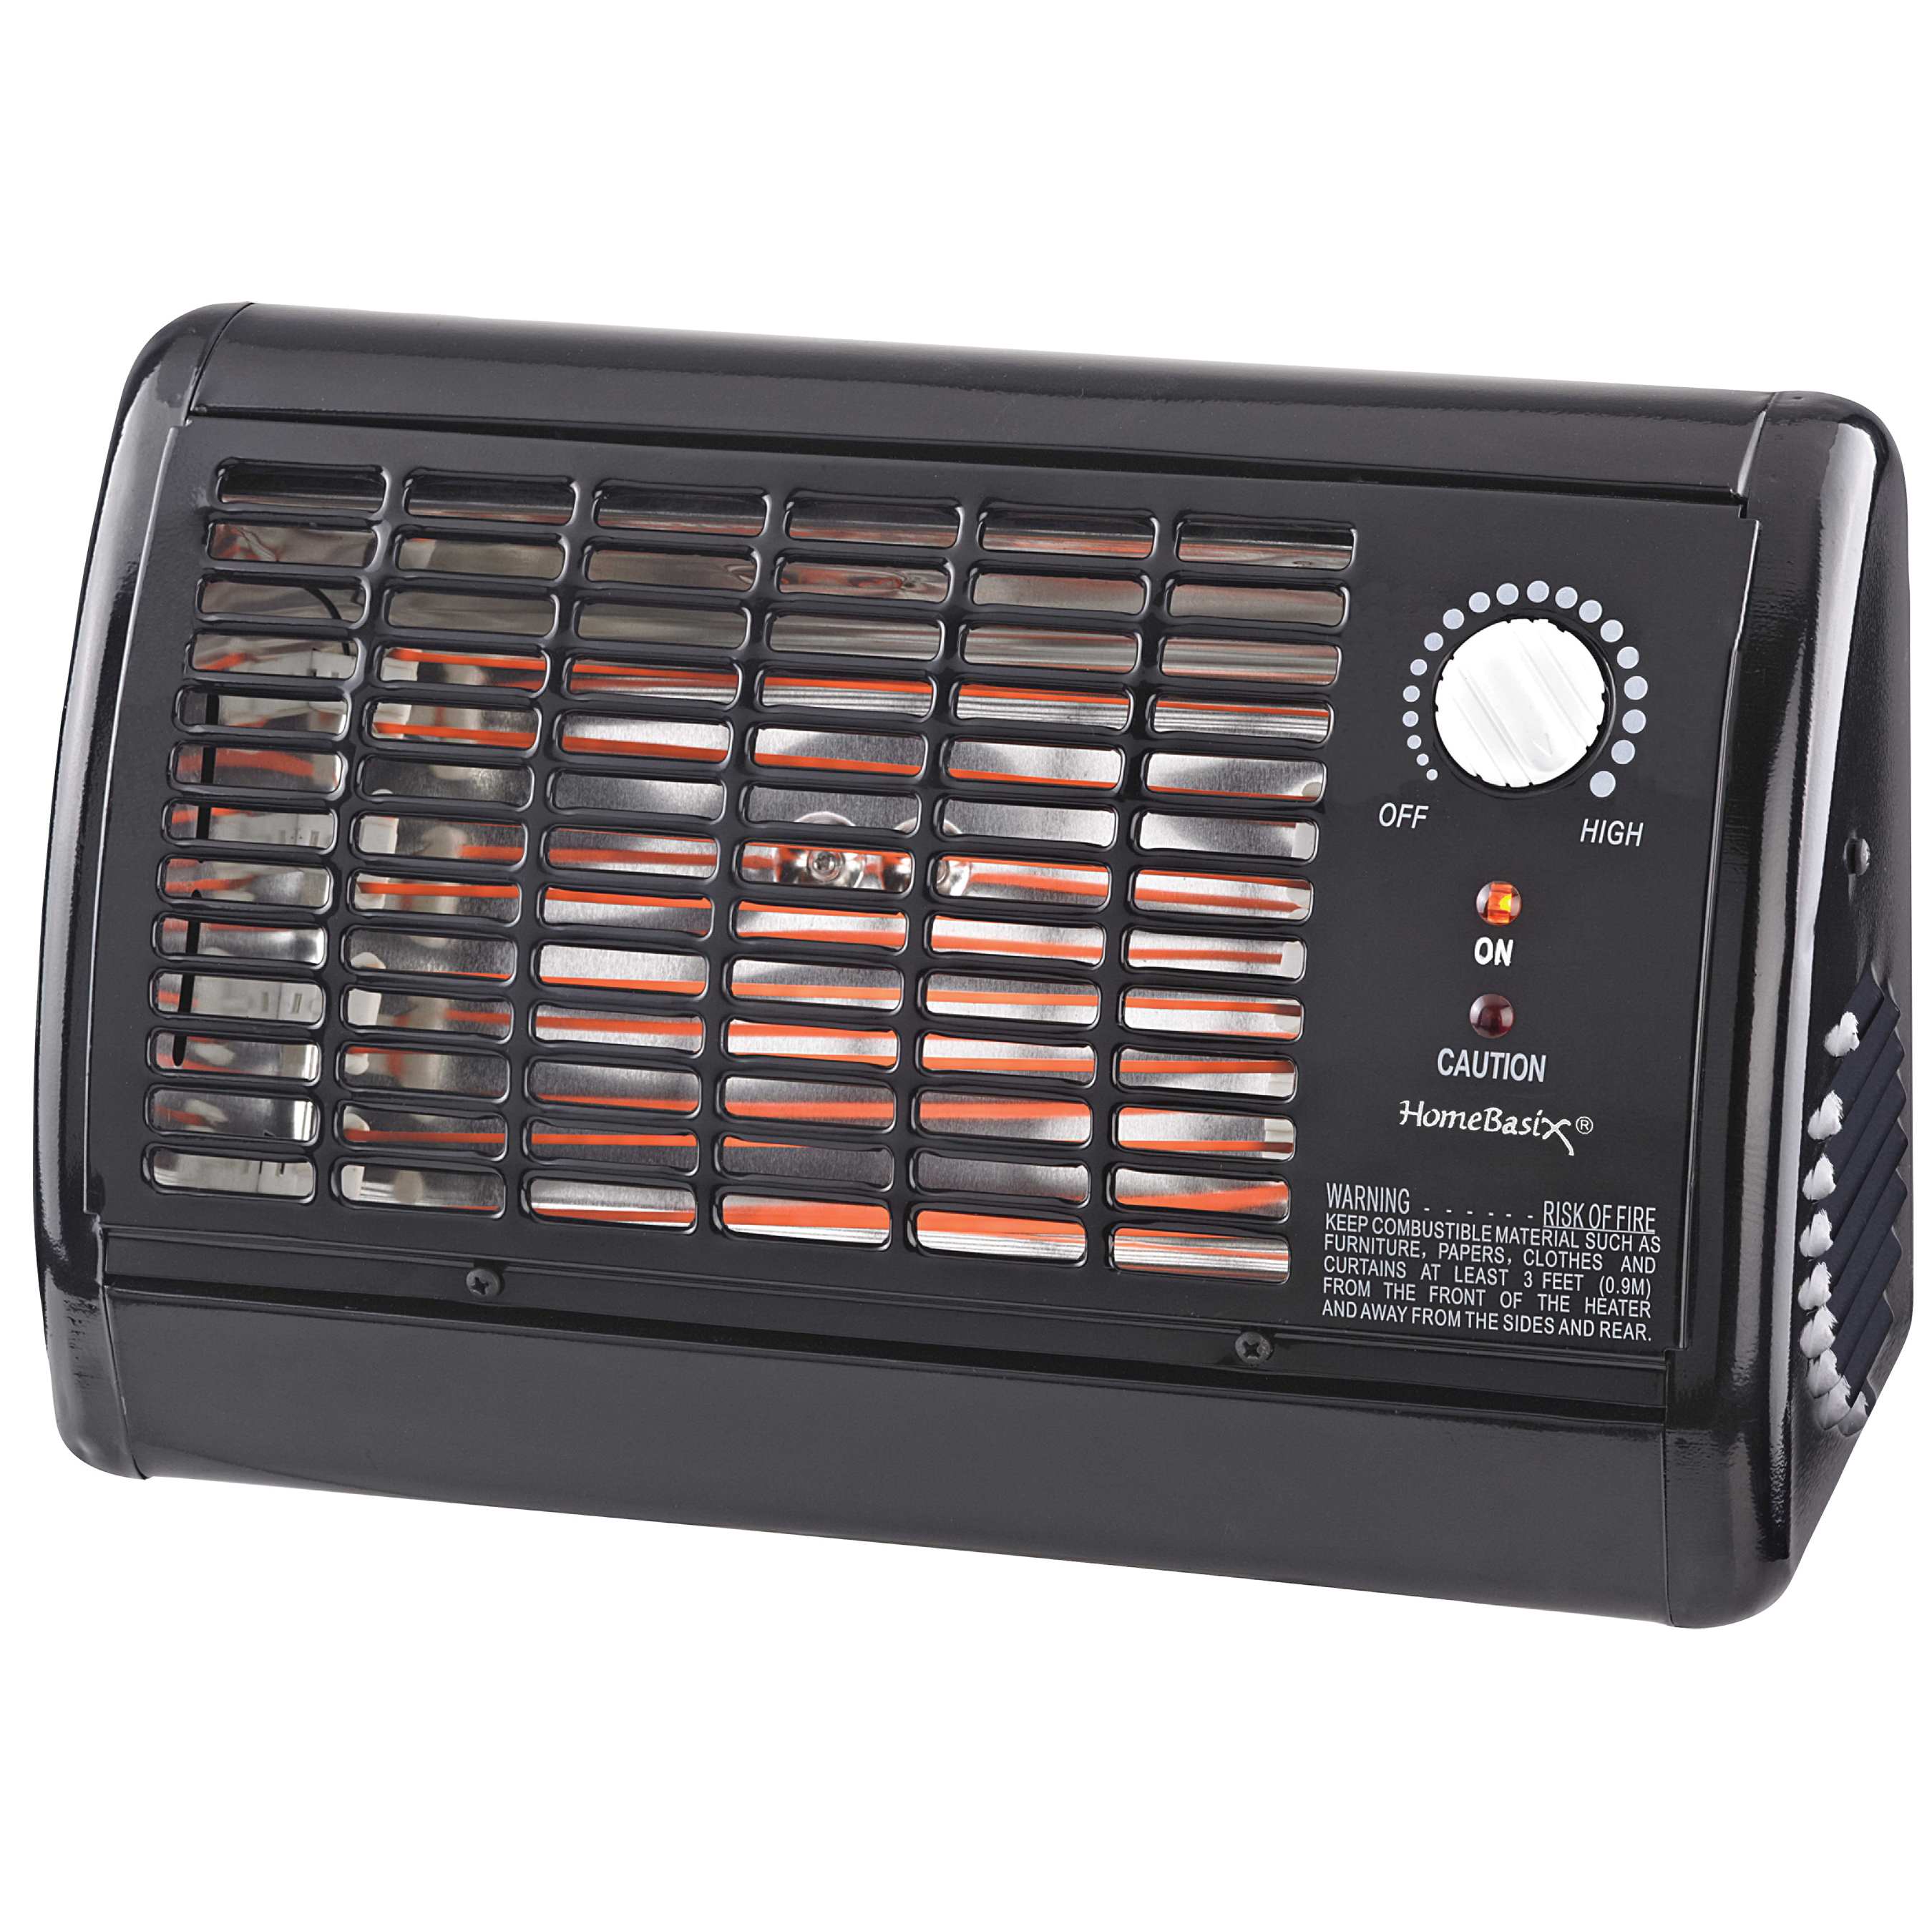 Picture of PowerZone QGW15-601 1320W Radiant Heater Black, 11 A, 120 V, 1320 W, 1320 W Heating, 1-Heating Stage, Black